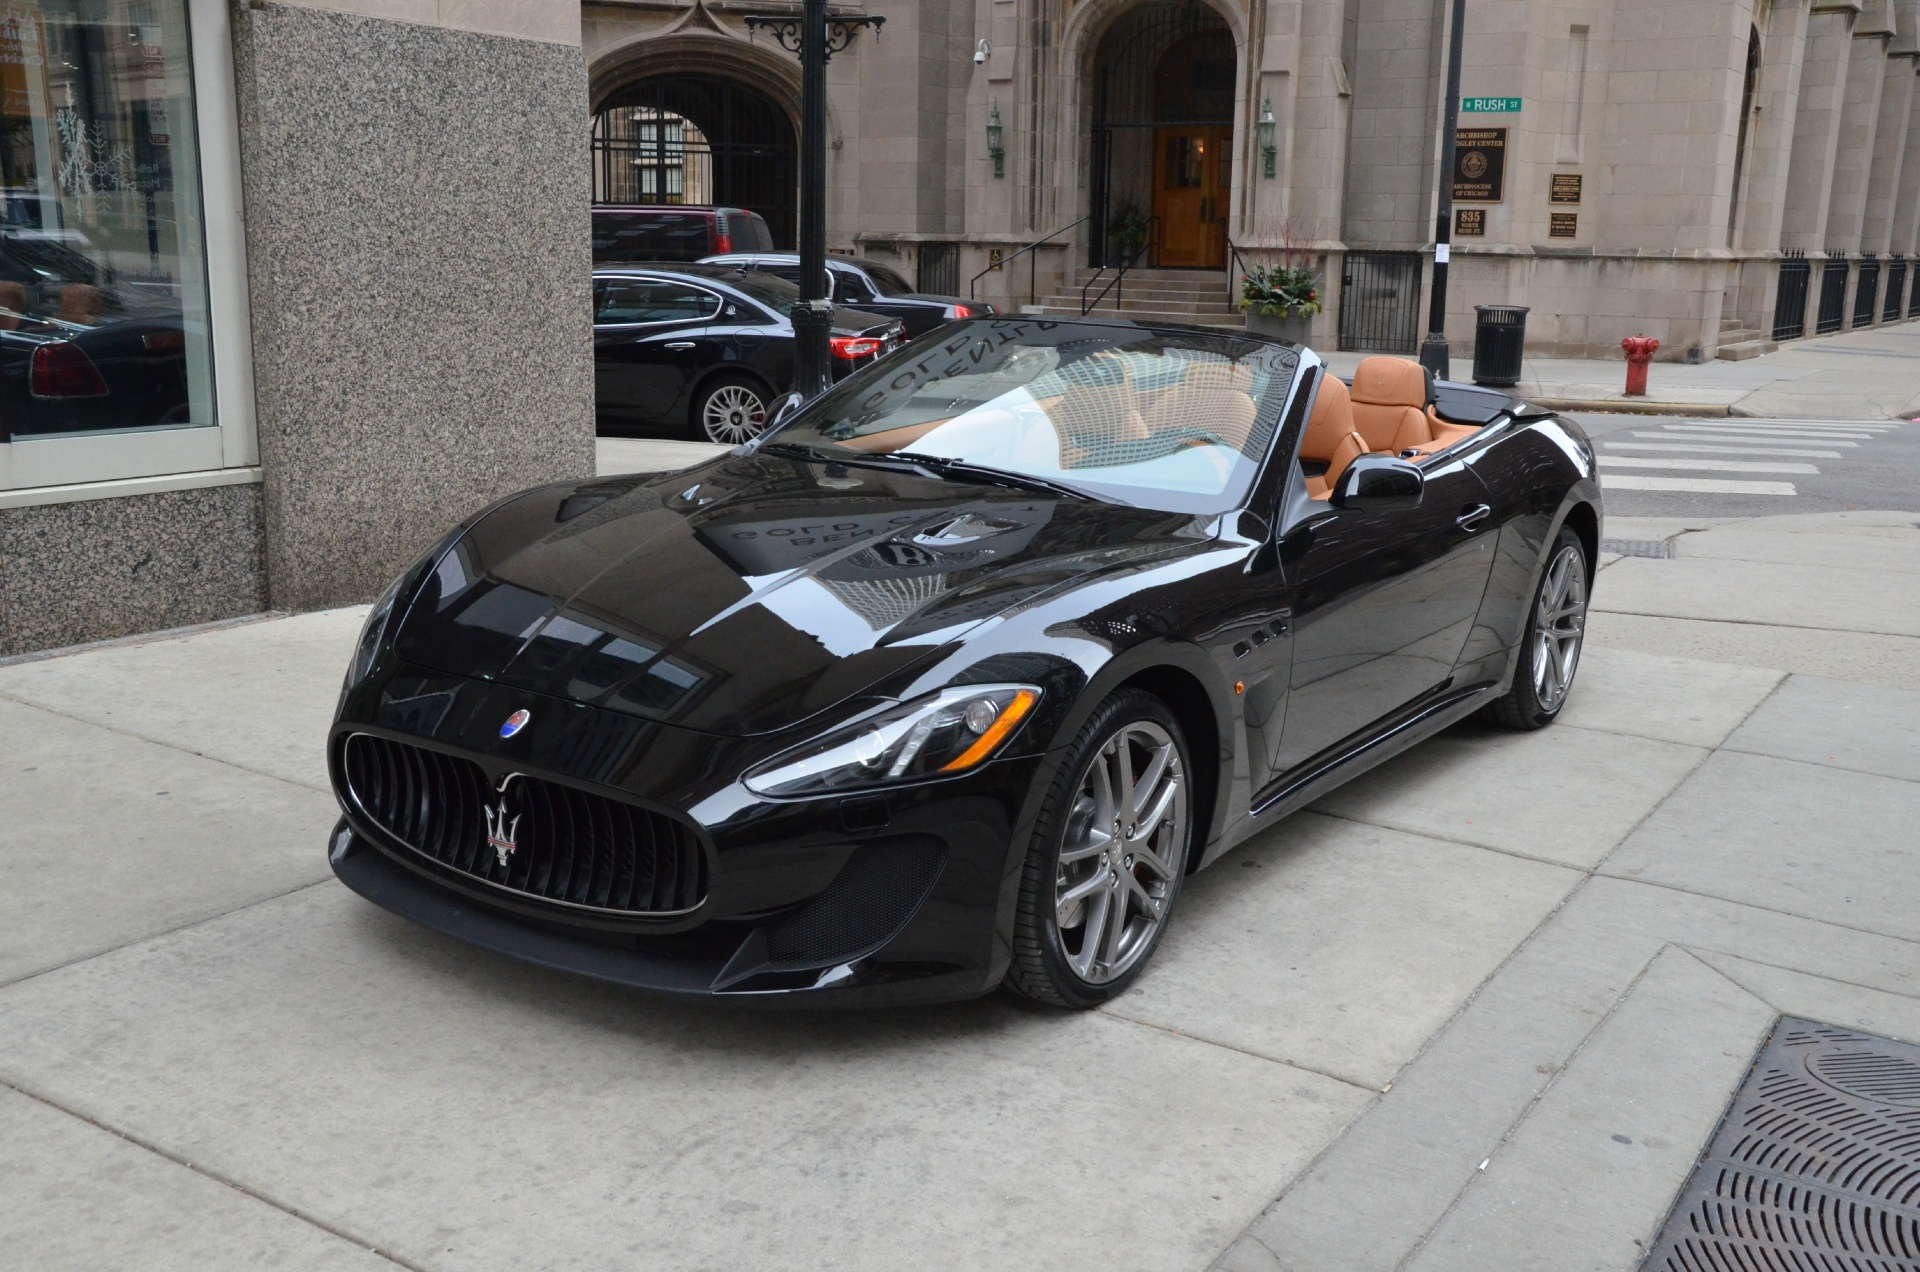 2014 maserati granturismo mc convertible stock m203 s for sale near chicago il il maserati. Black Bedroom Furniture Sets. Home Design Ideas